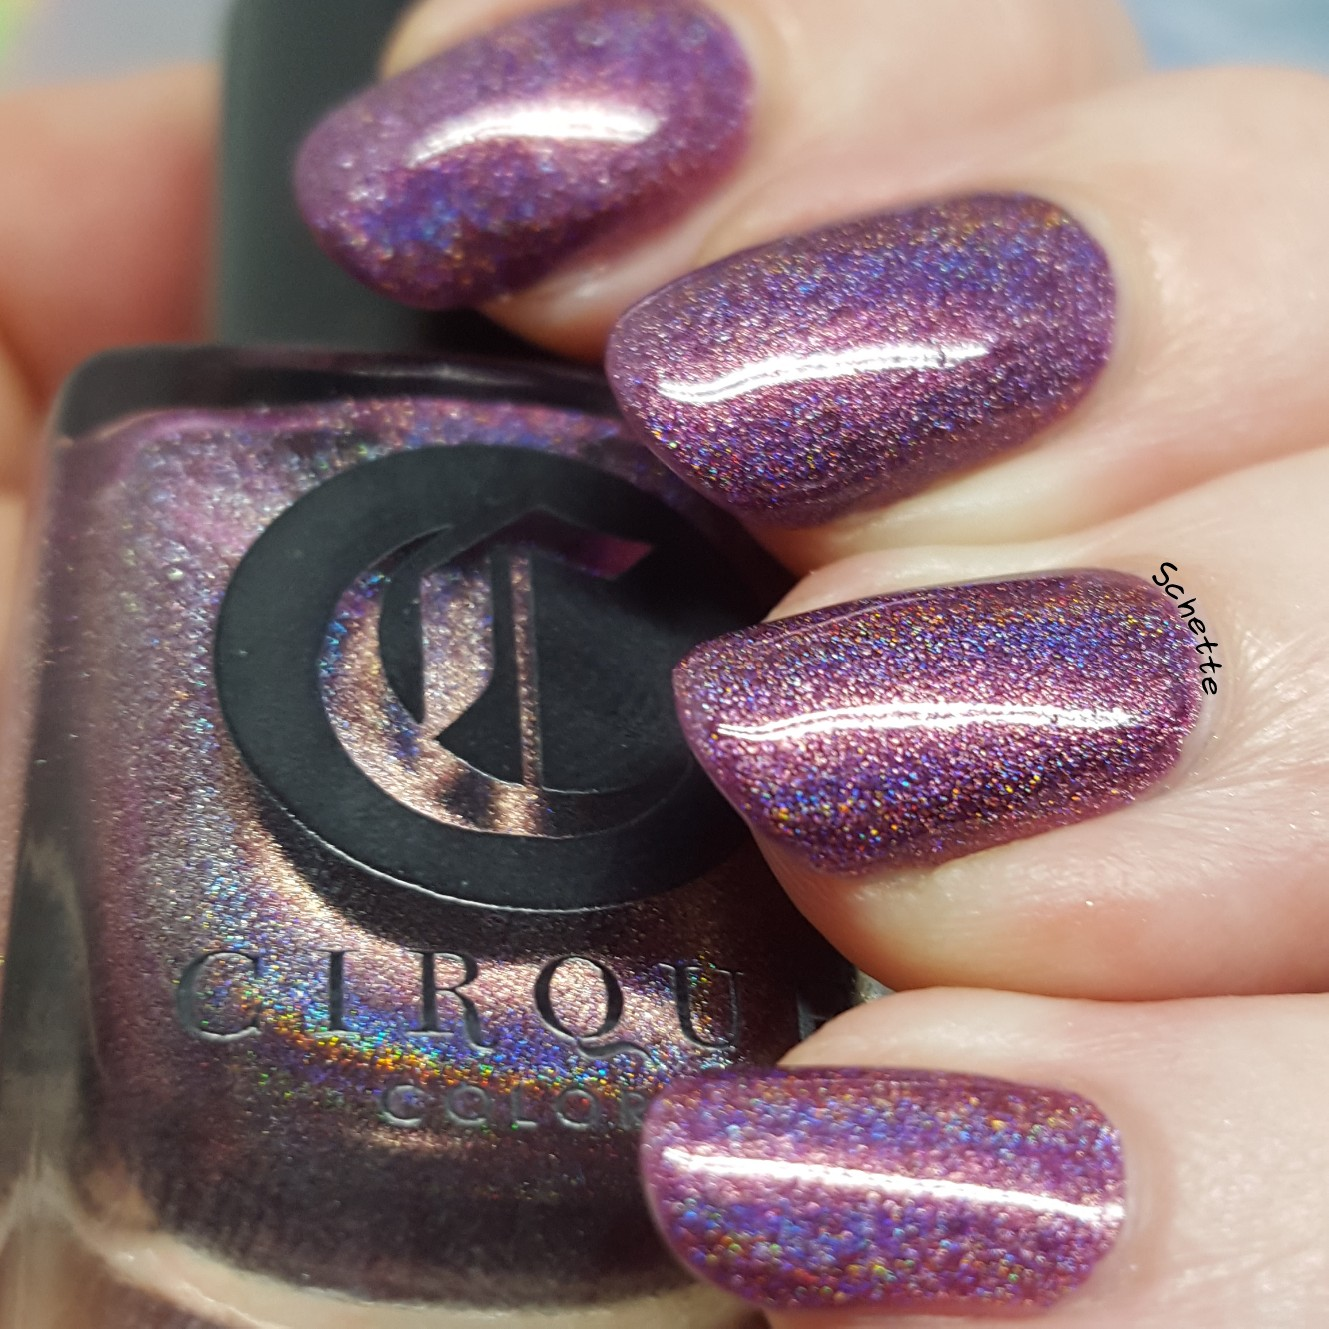 Cirque colors - Boudoir